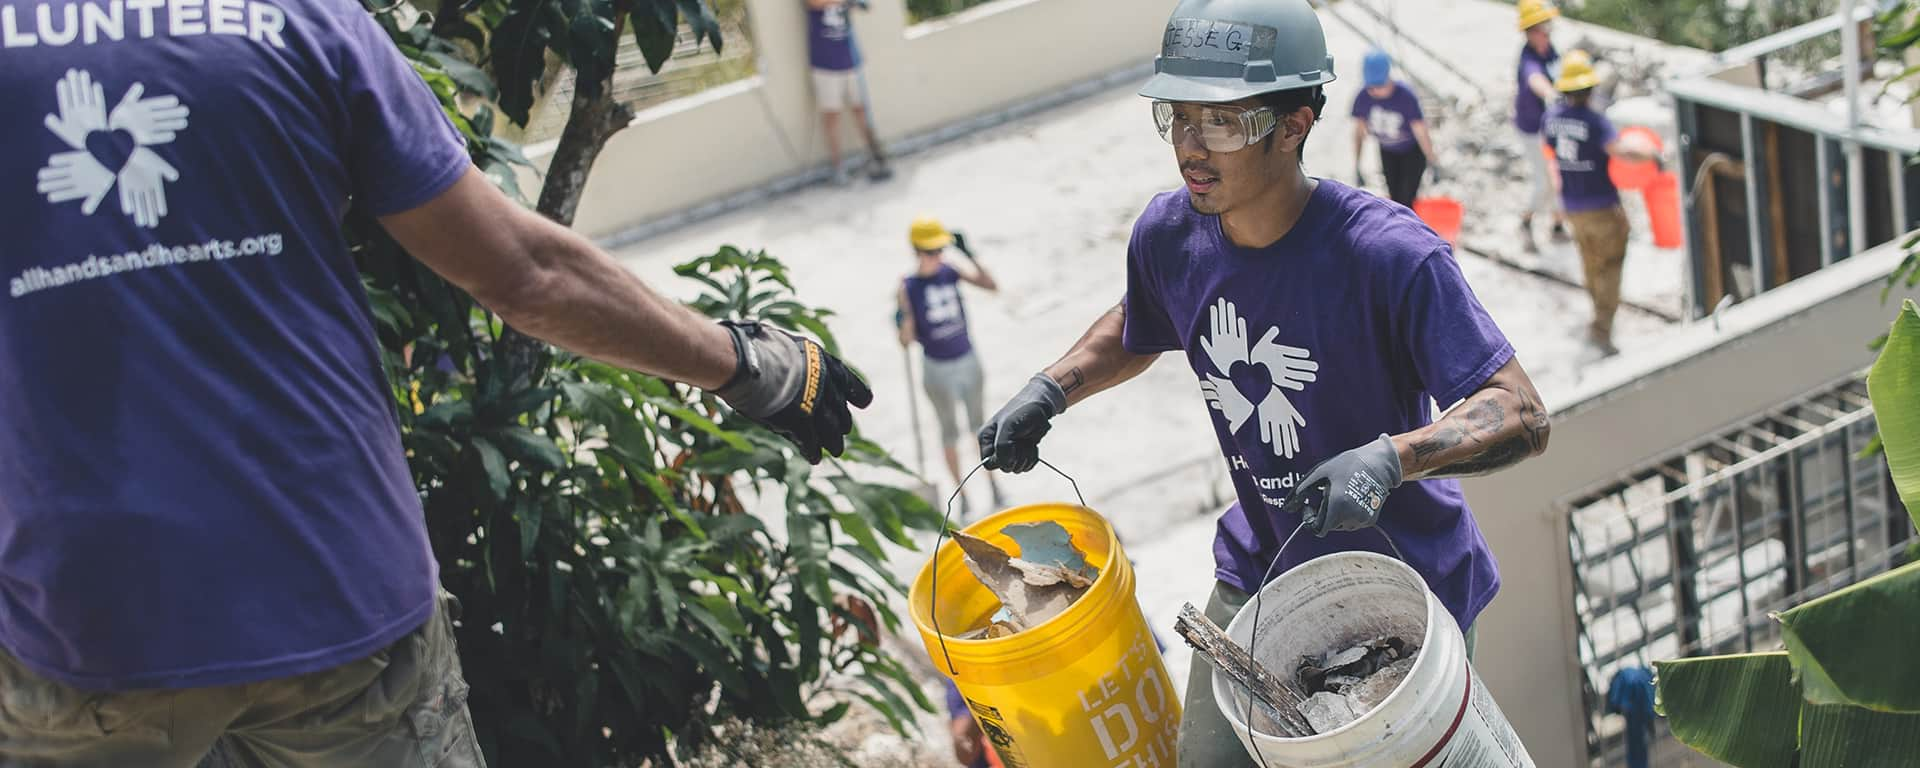 An international volunteer carrying and passing buckets of debris